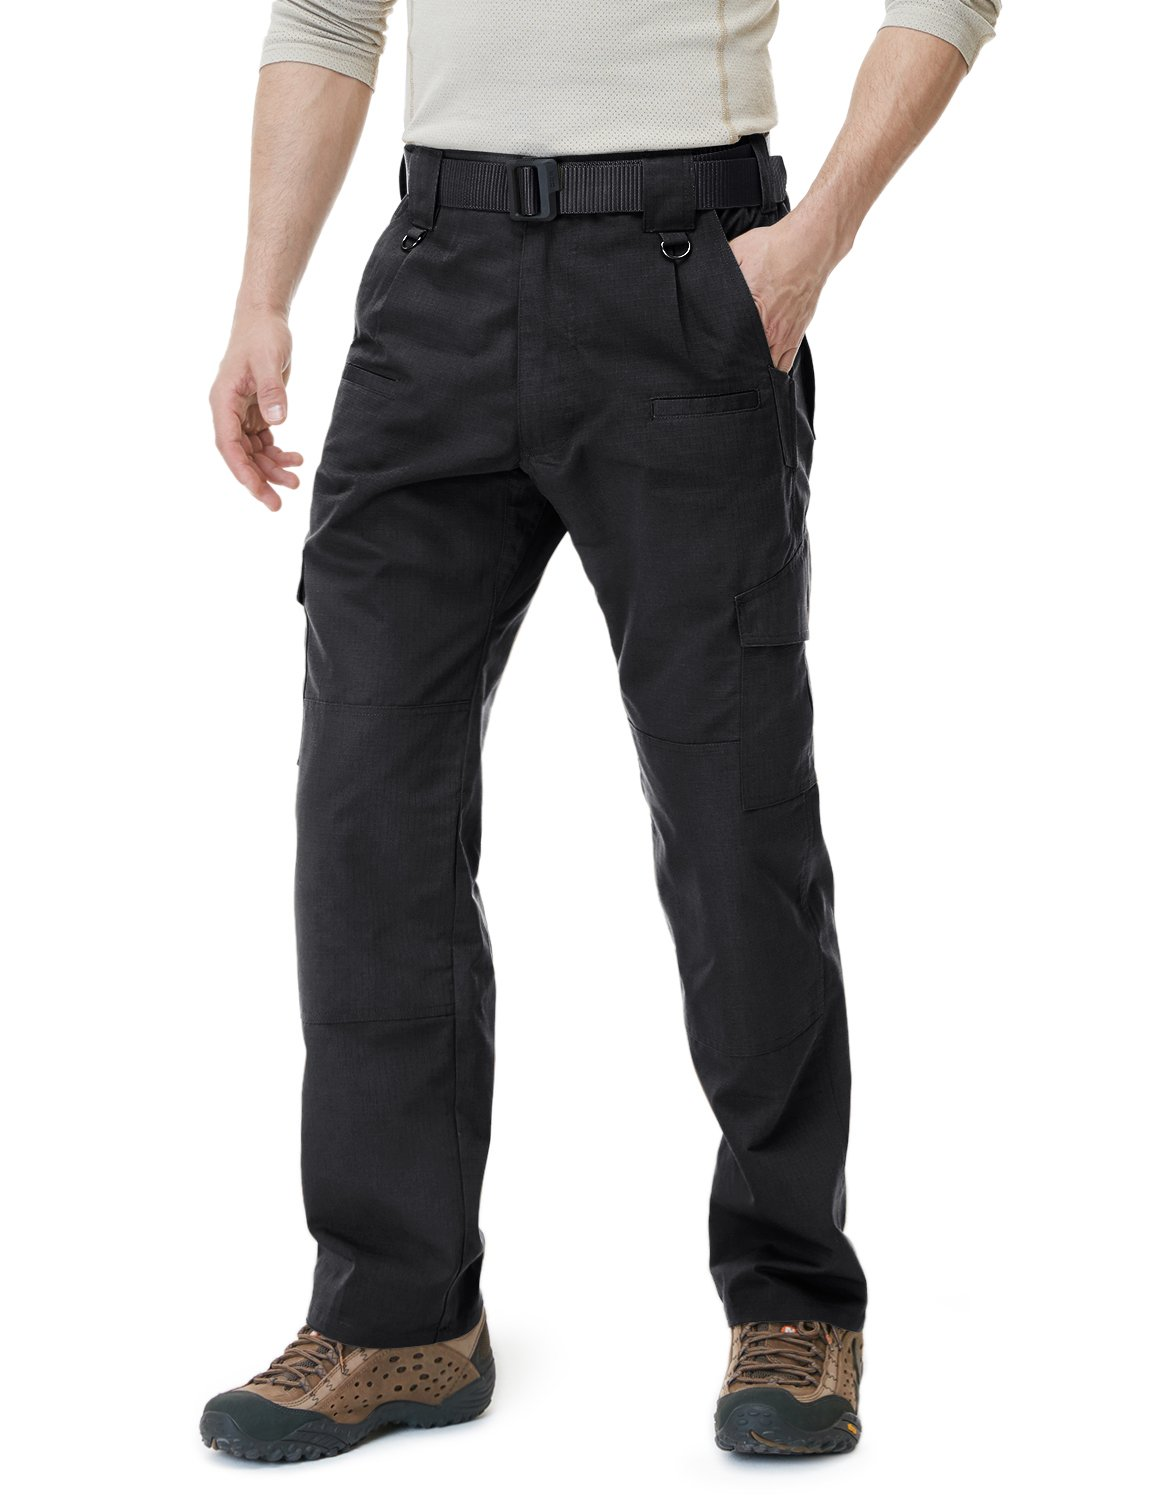 CQR CQ-TLP104-BLK_32W/34L Men's Tactical Pants Lightweight EDC Assault Cargo TLP101/102/103/104